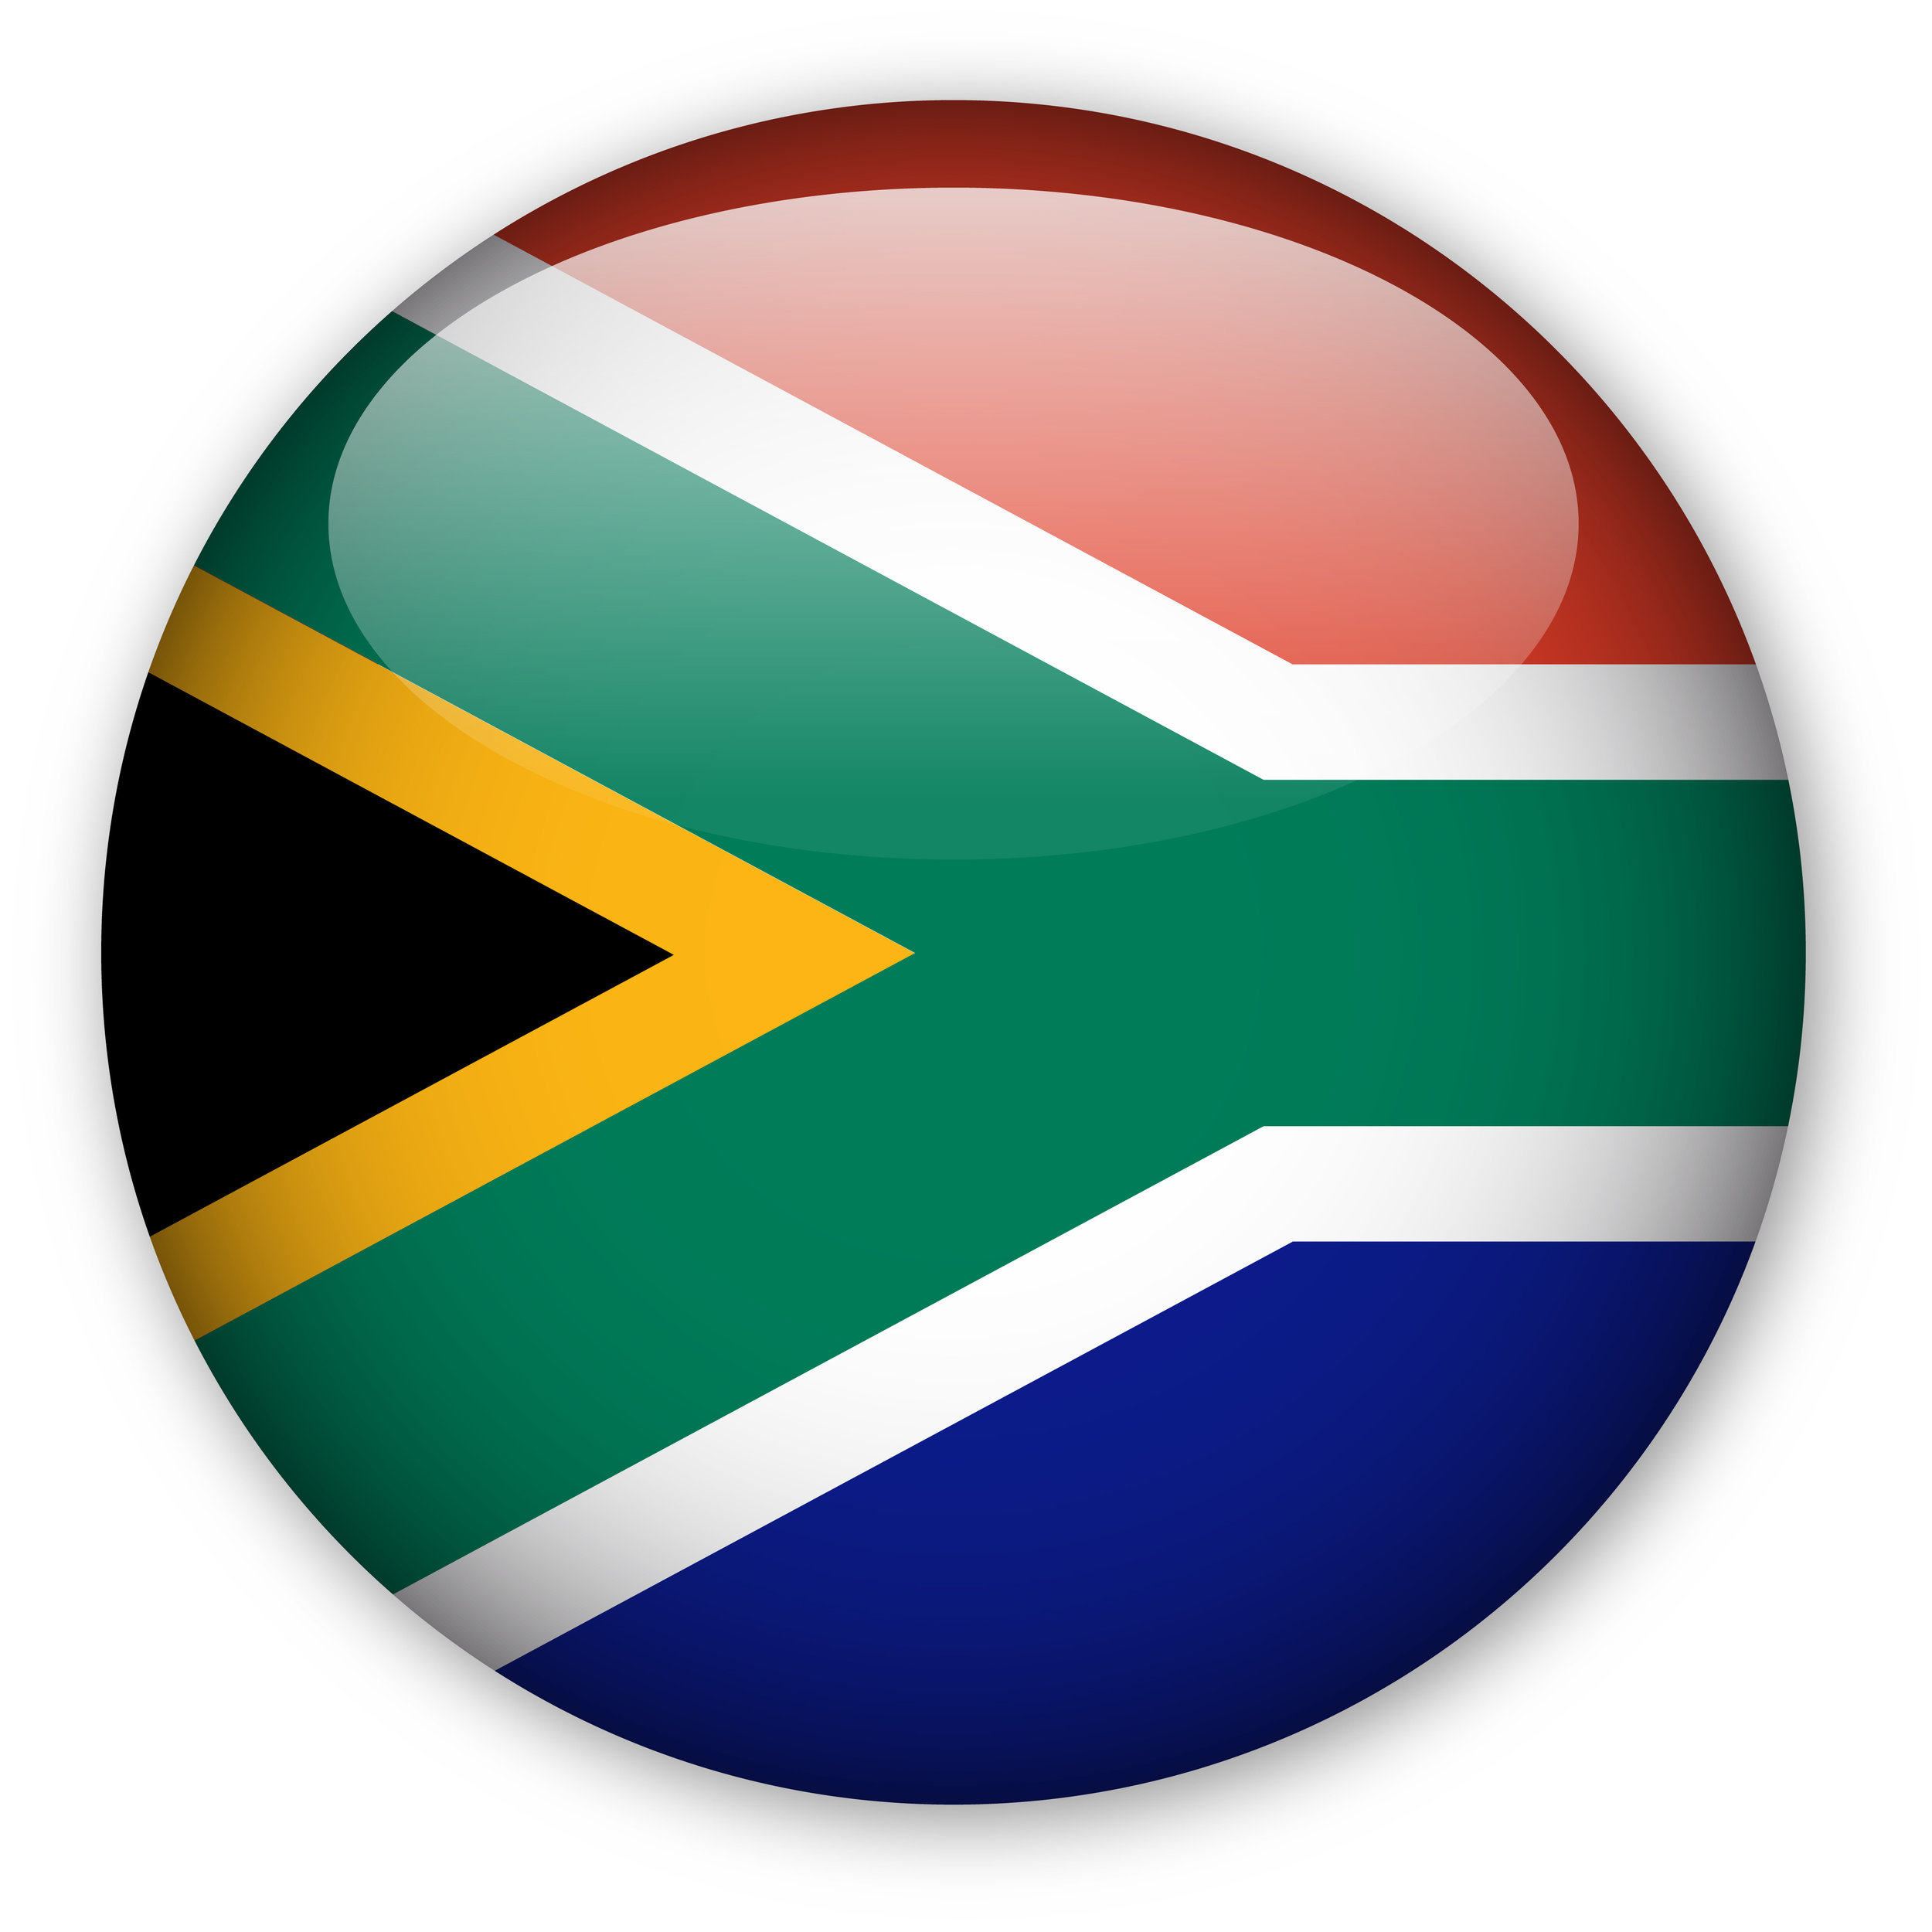 AdobeStock_South Africa button.jpeg